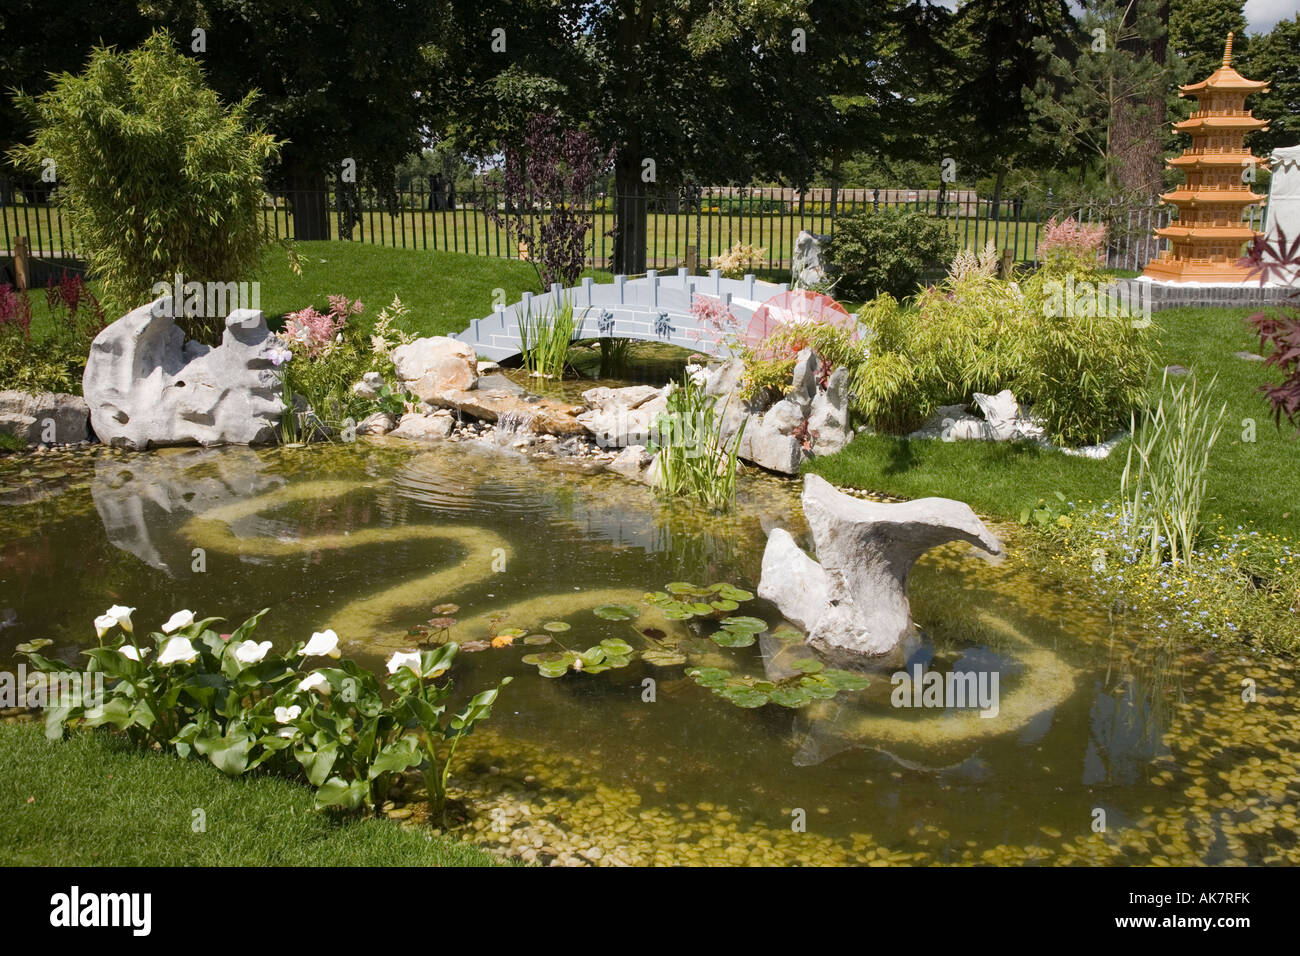 Search Results For Chinese Garden With Pool Pool Designer Stock Photos And  Images